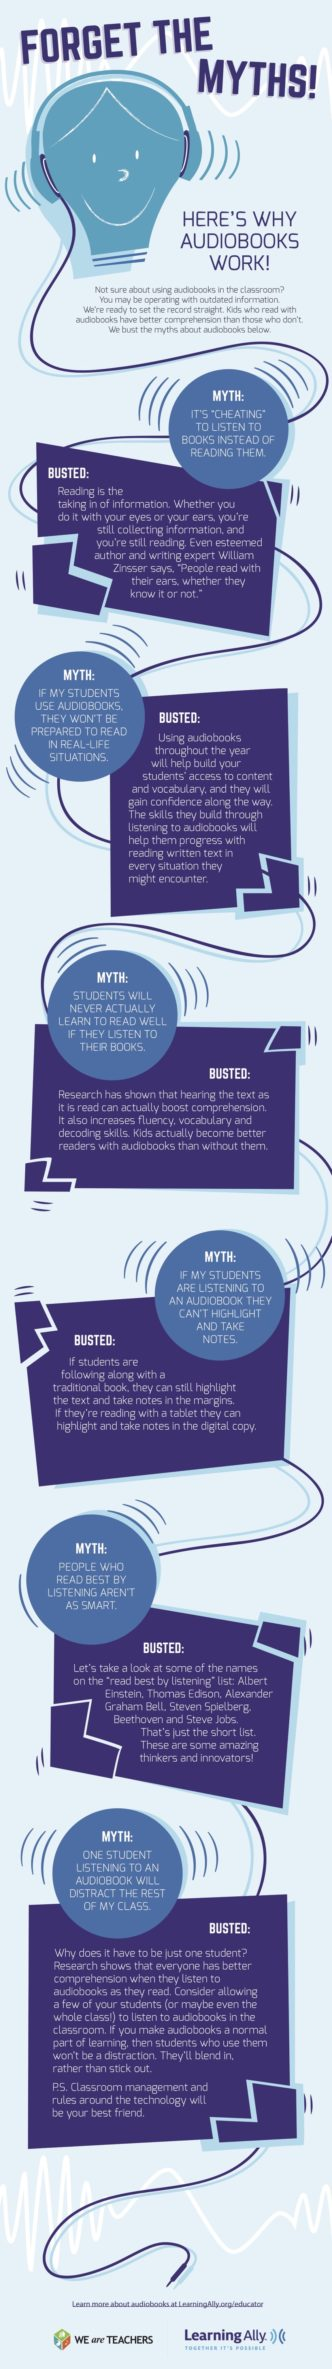 Why audiobooks work in the classroom #infographic